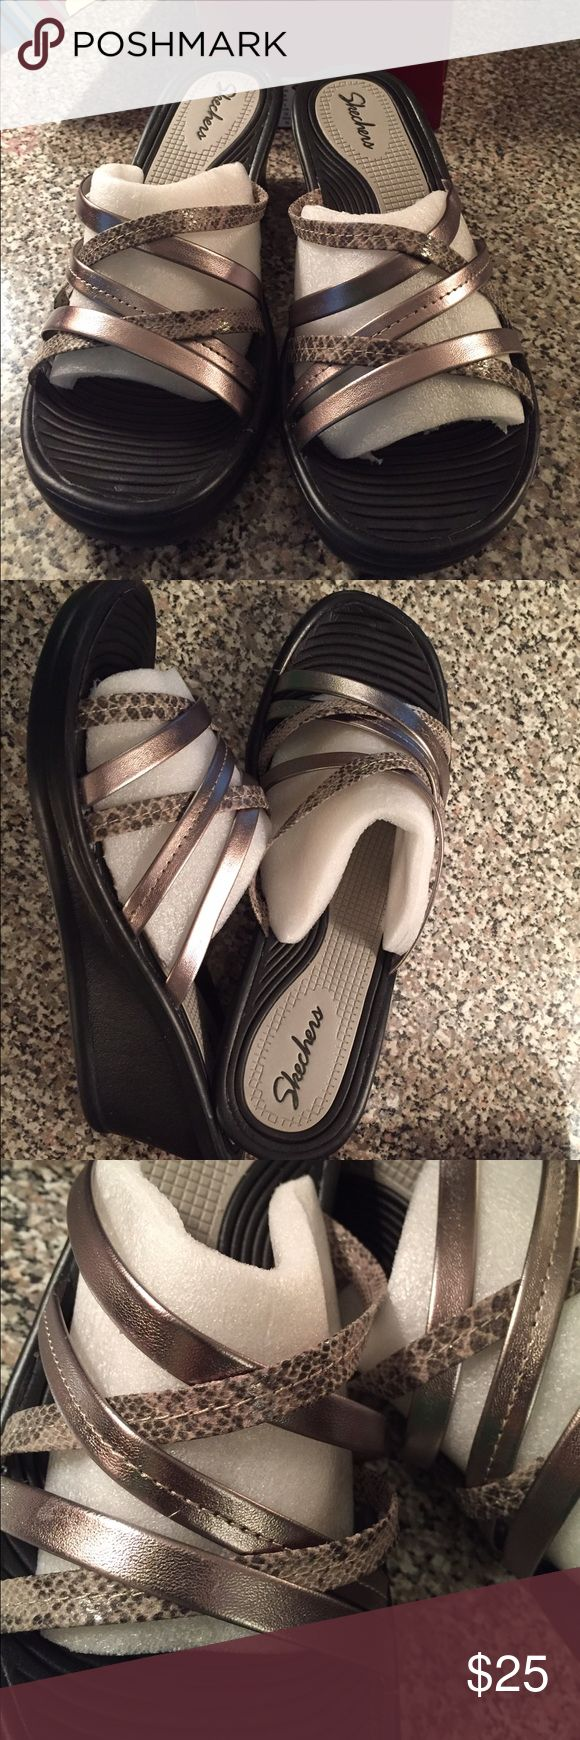 Skechers wedge sandals New in box. Silver in color. Skechers Shoes Sandals